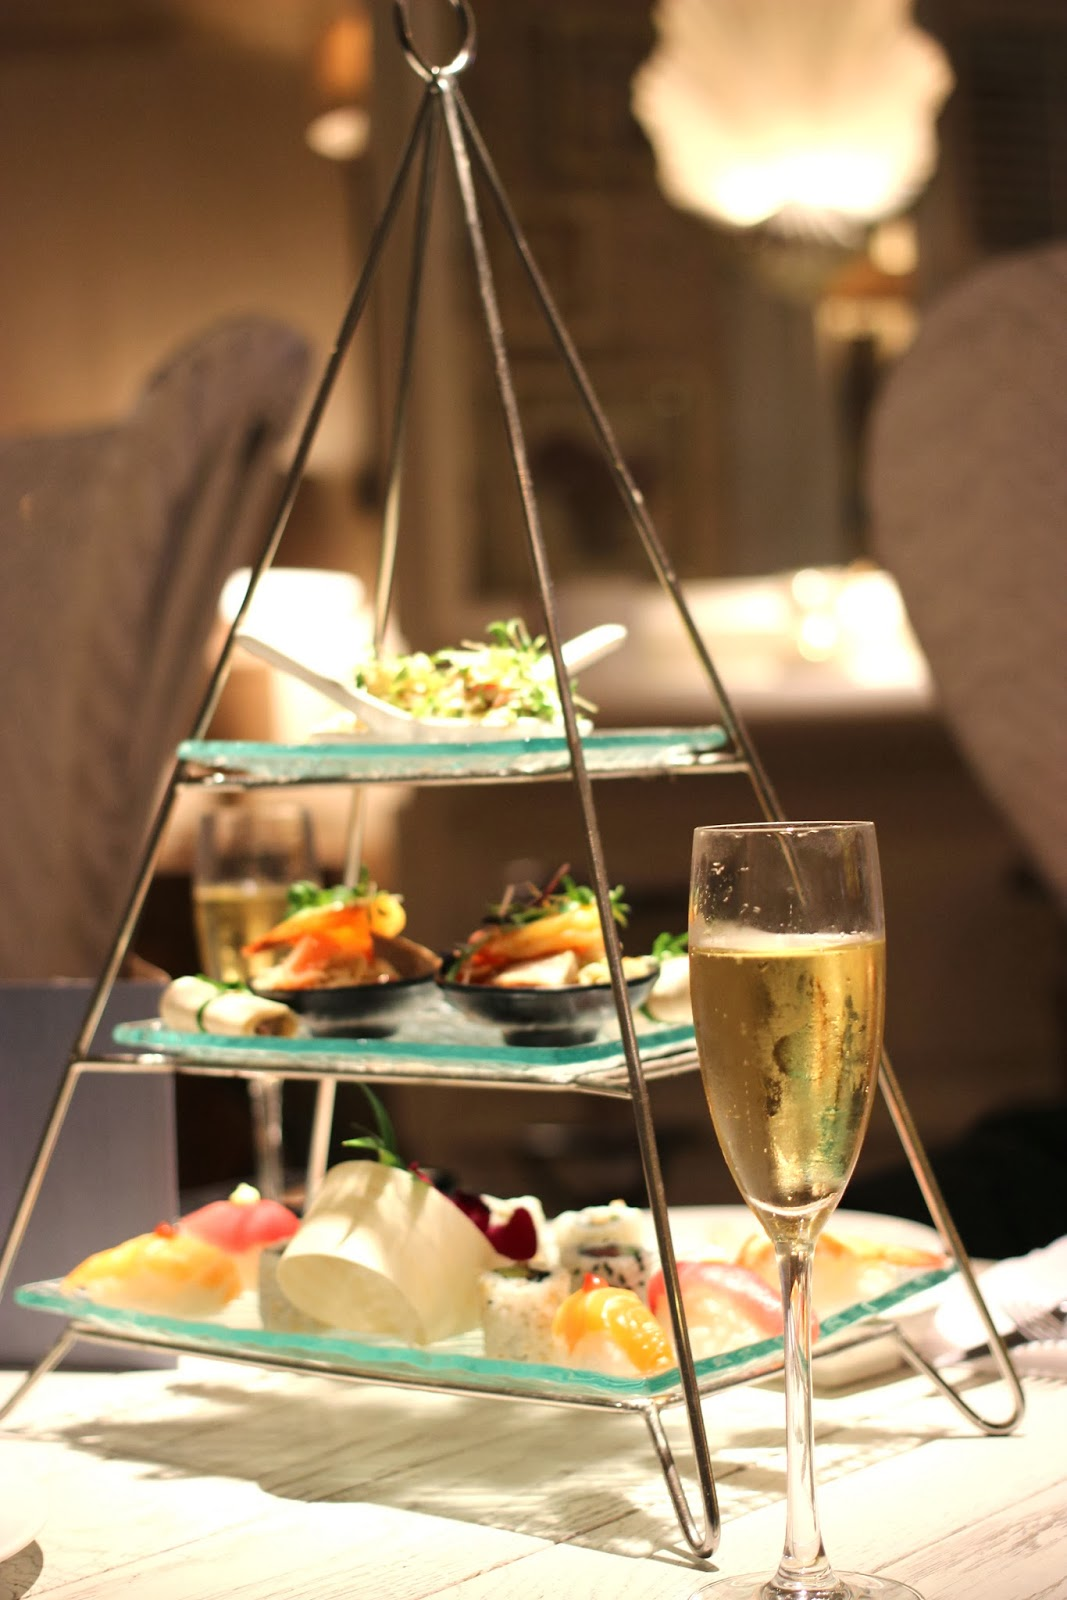 The Afternoon Tea Club Reviews Australasia Manchester